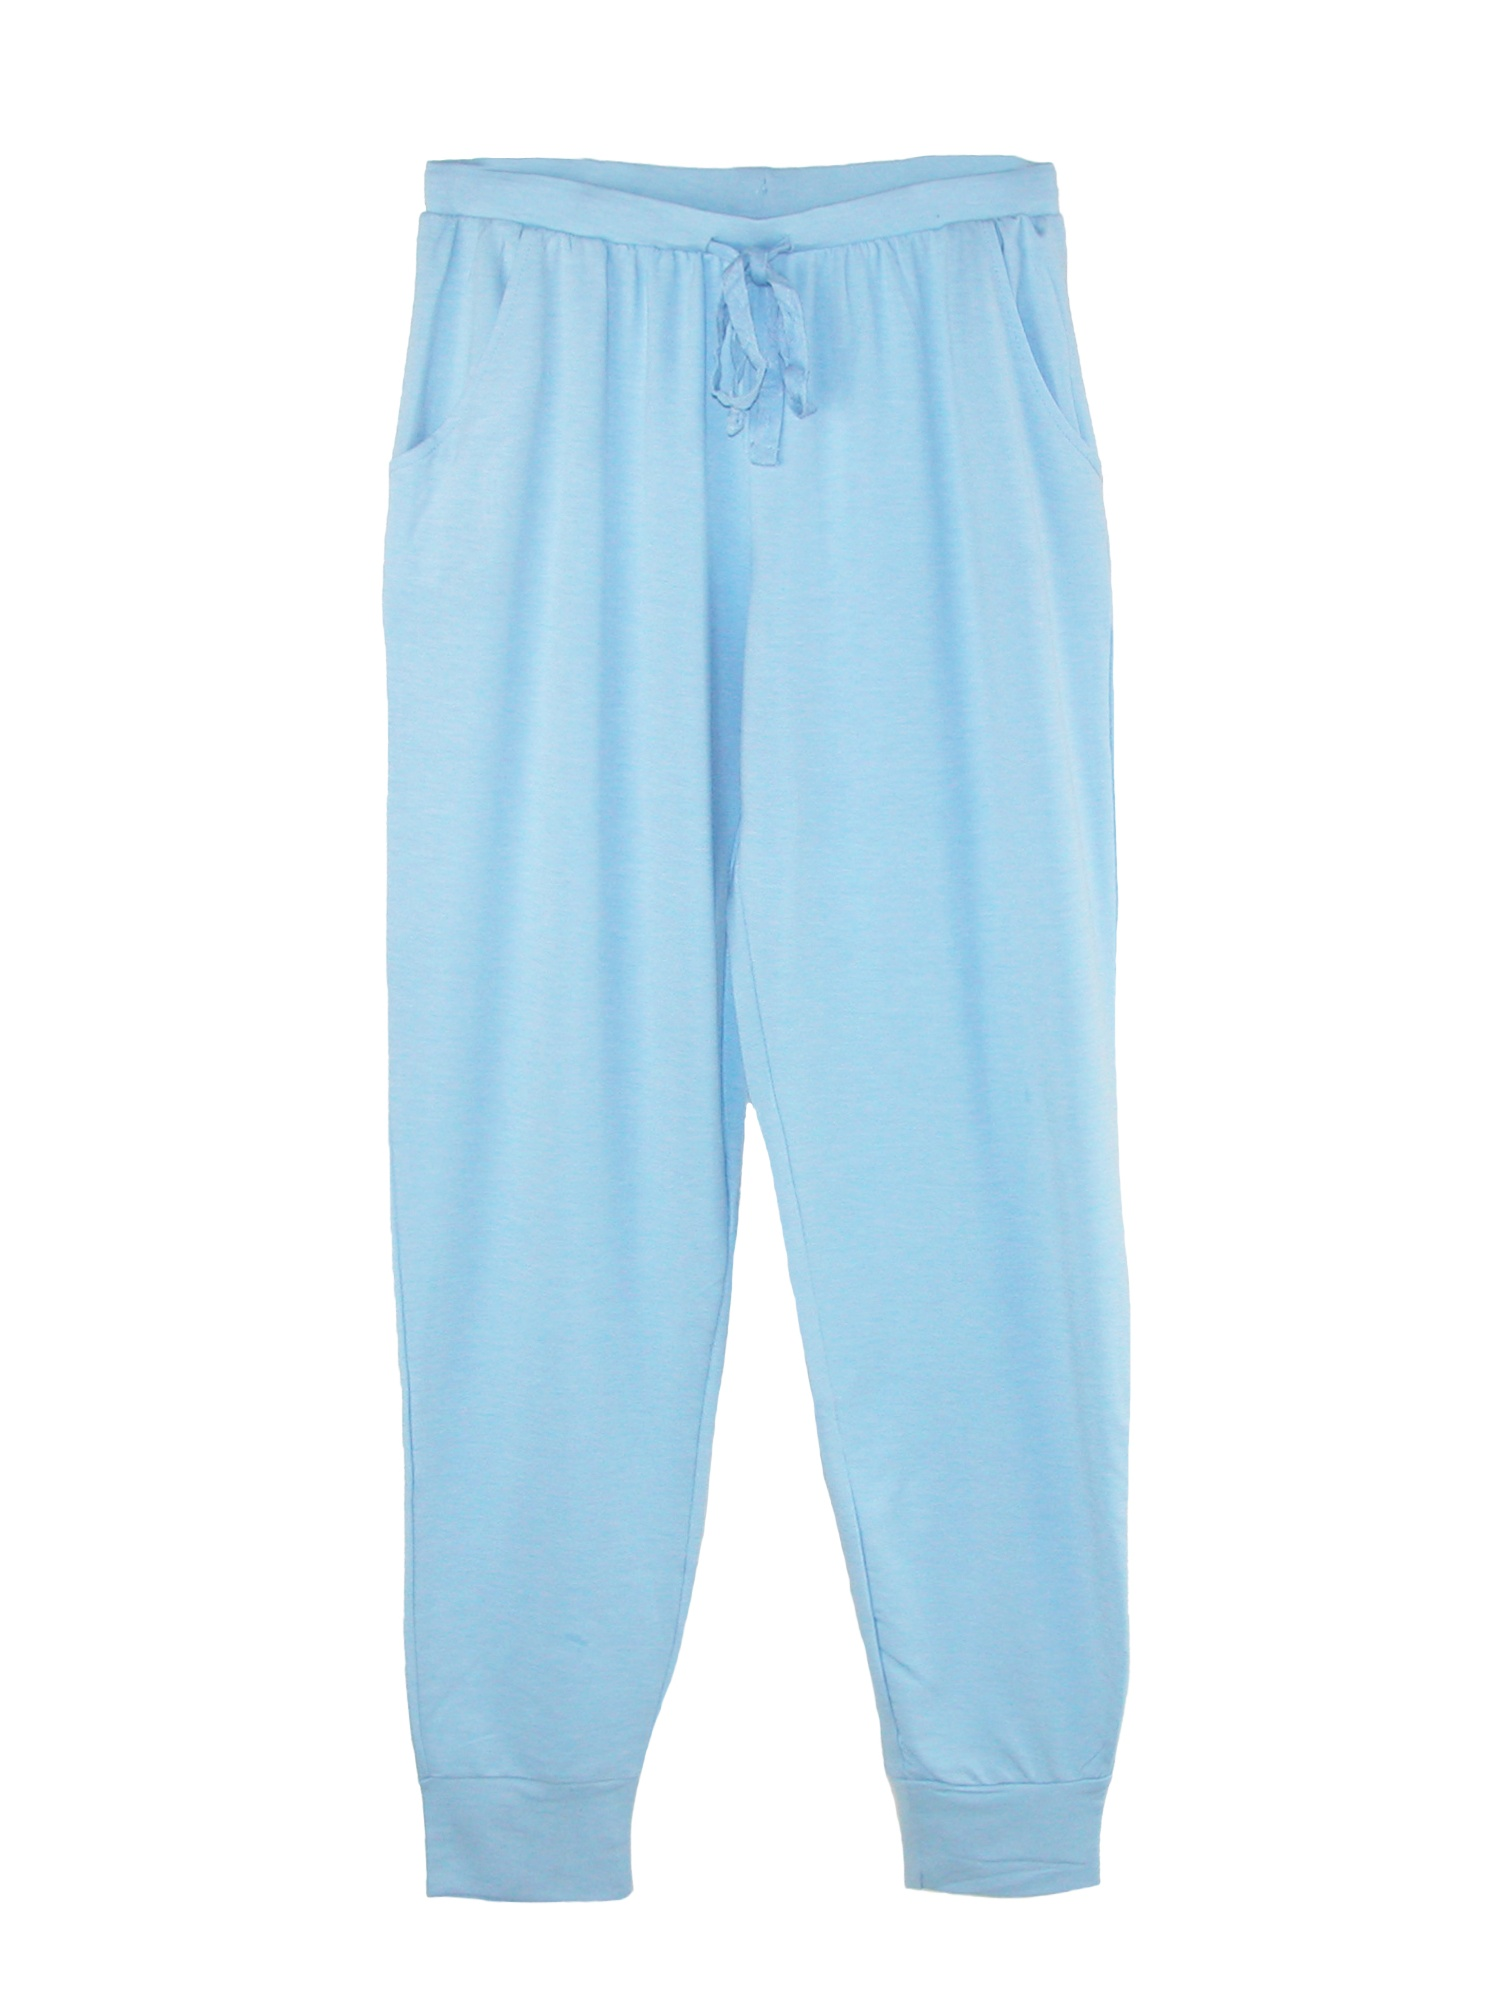 Hanes Women's French Terry Jogger Pajama Pant